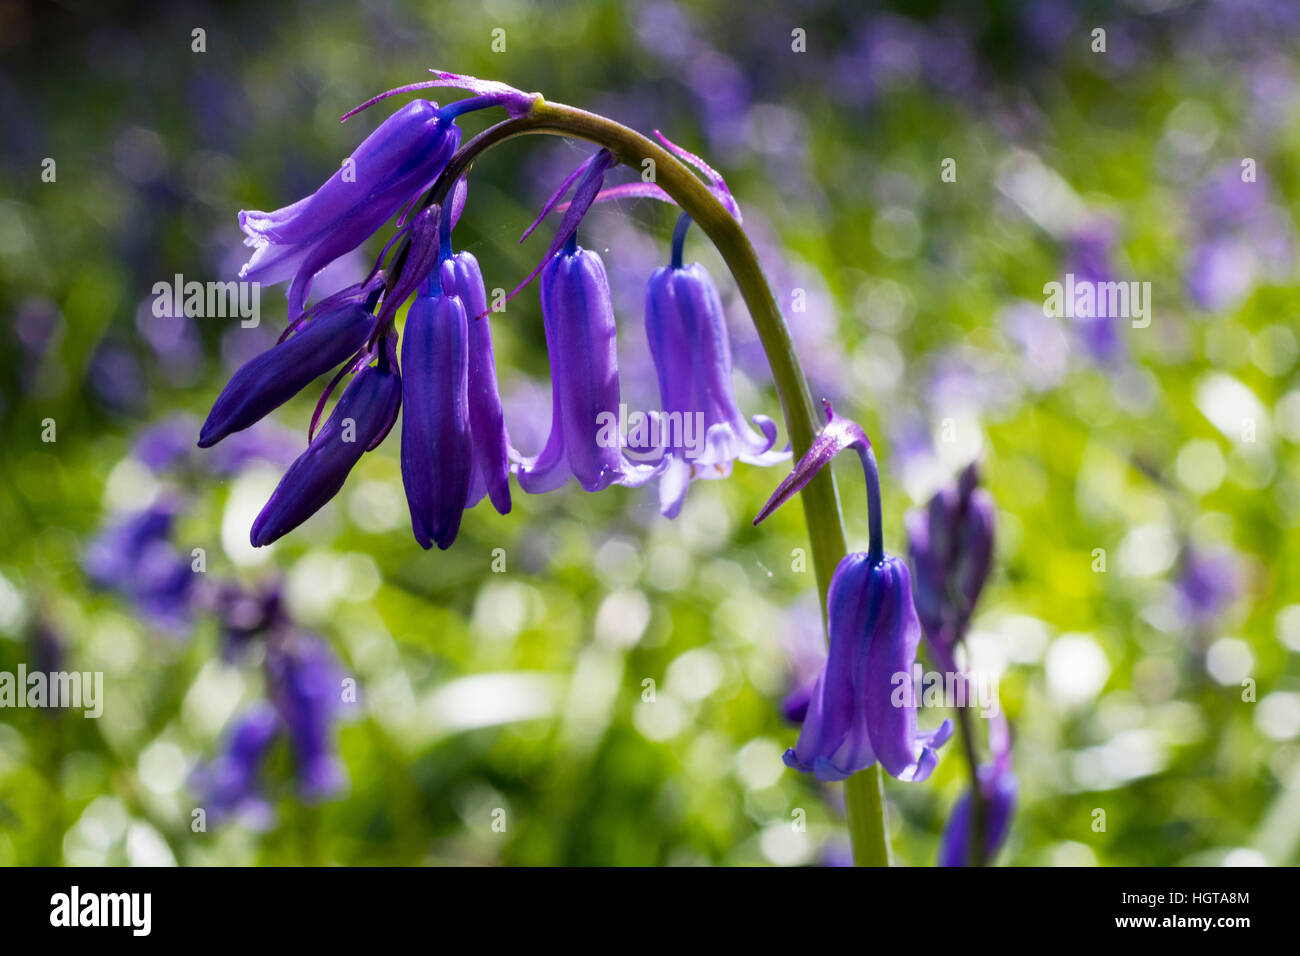 'One in a Million' – Close up Detail of a Single Bluebell Flower (Hyacinthoides non-scripta) Amongst a Large Cluster. - Stock Image